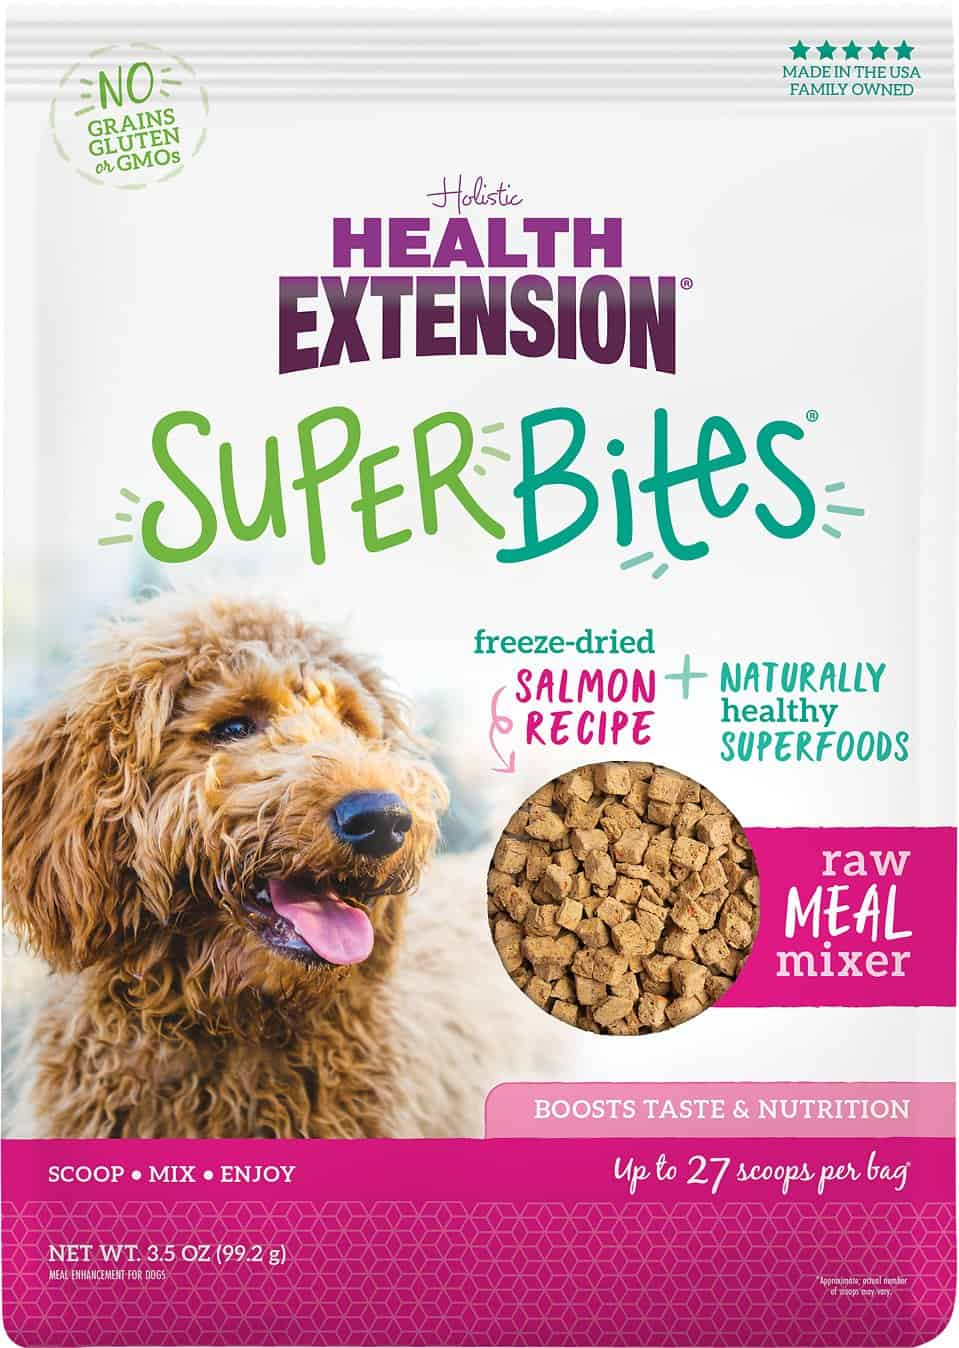 Health Extension Dog Food Review 2020: Better Dog Food Option? 16